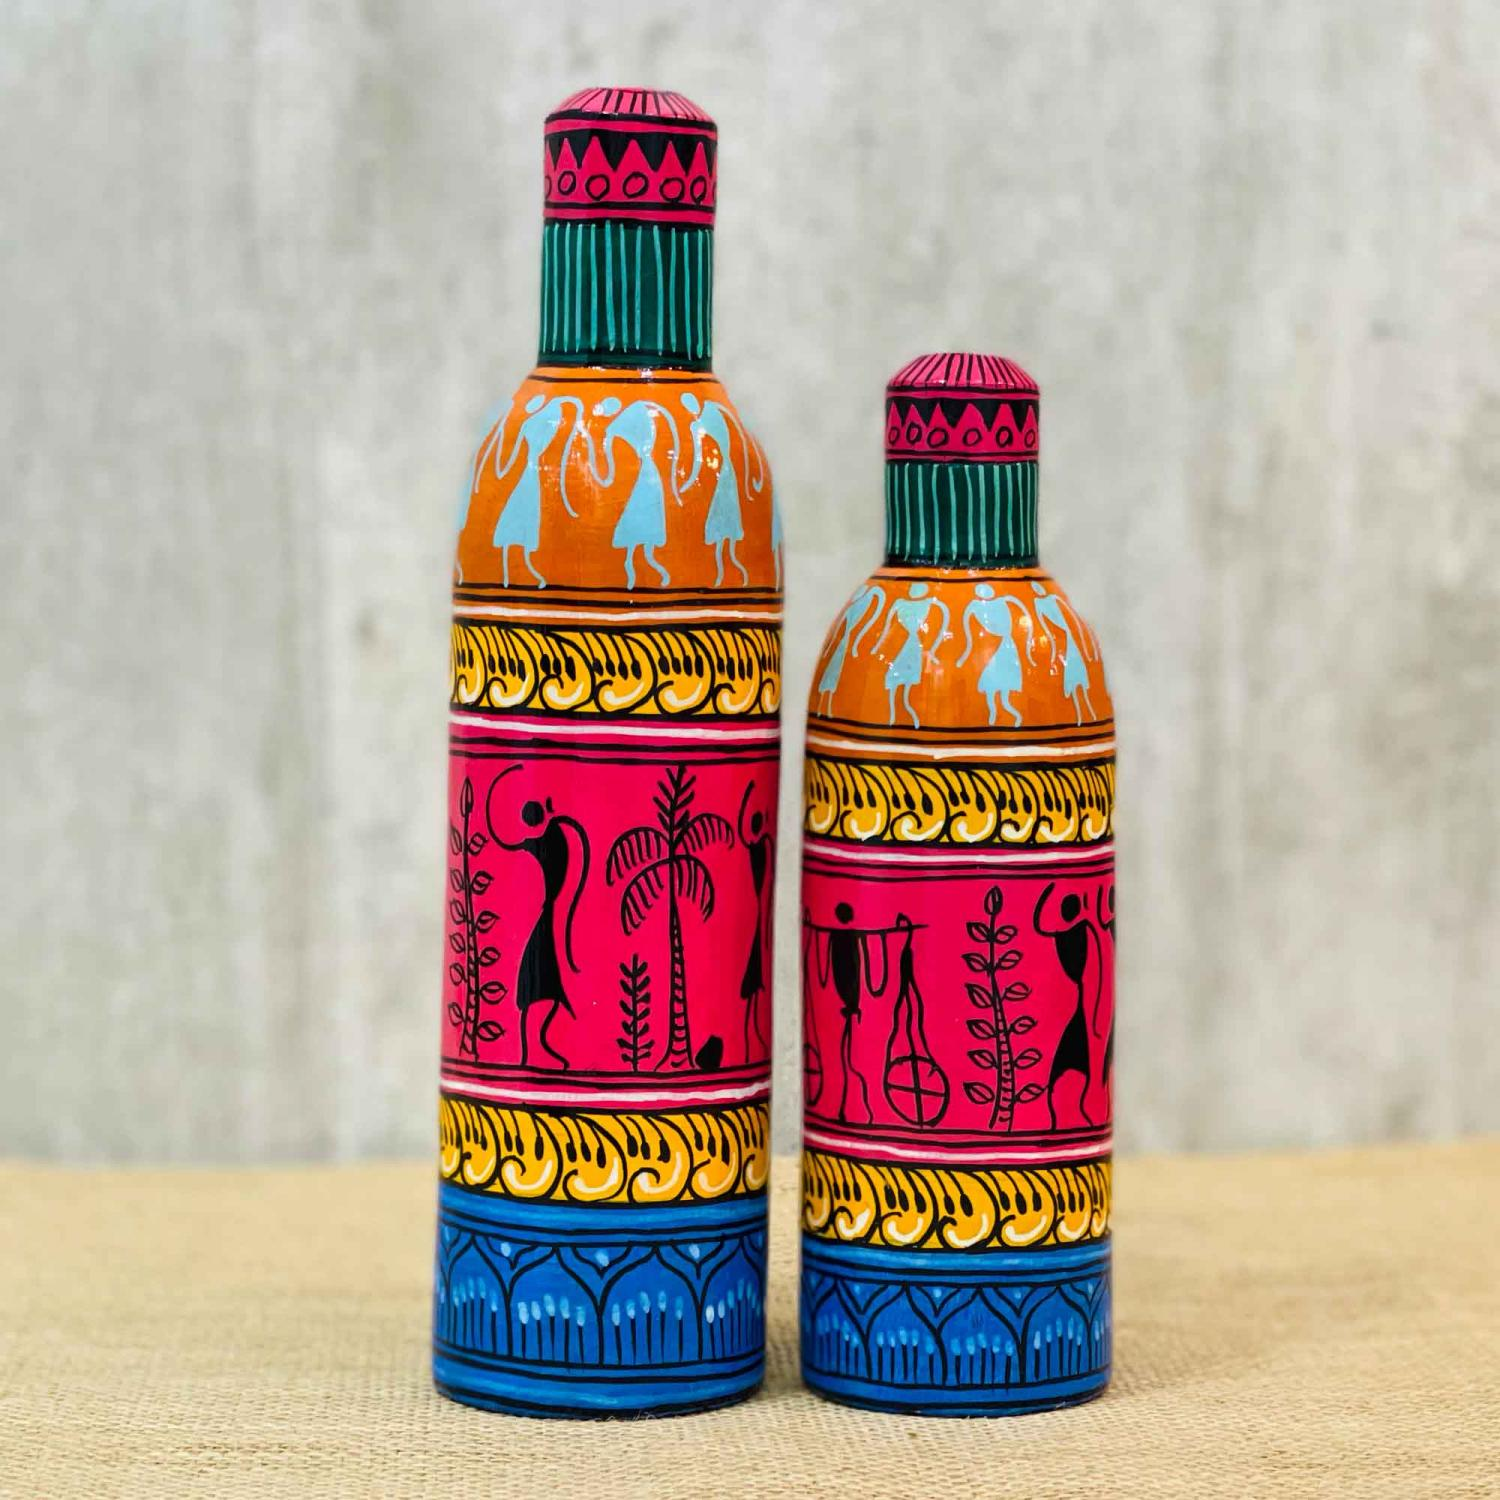 Decorative bottles with tribal motifs in green, pink, mustard and orange colors with a blue base on a table with a beige table cloth and a grey background